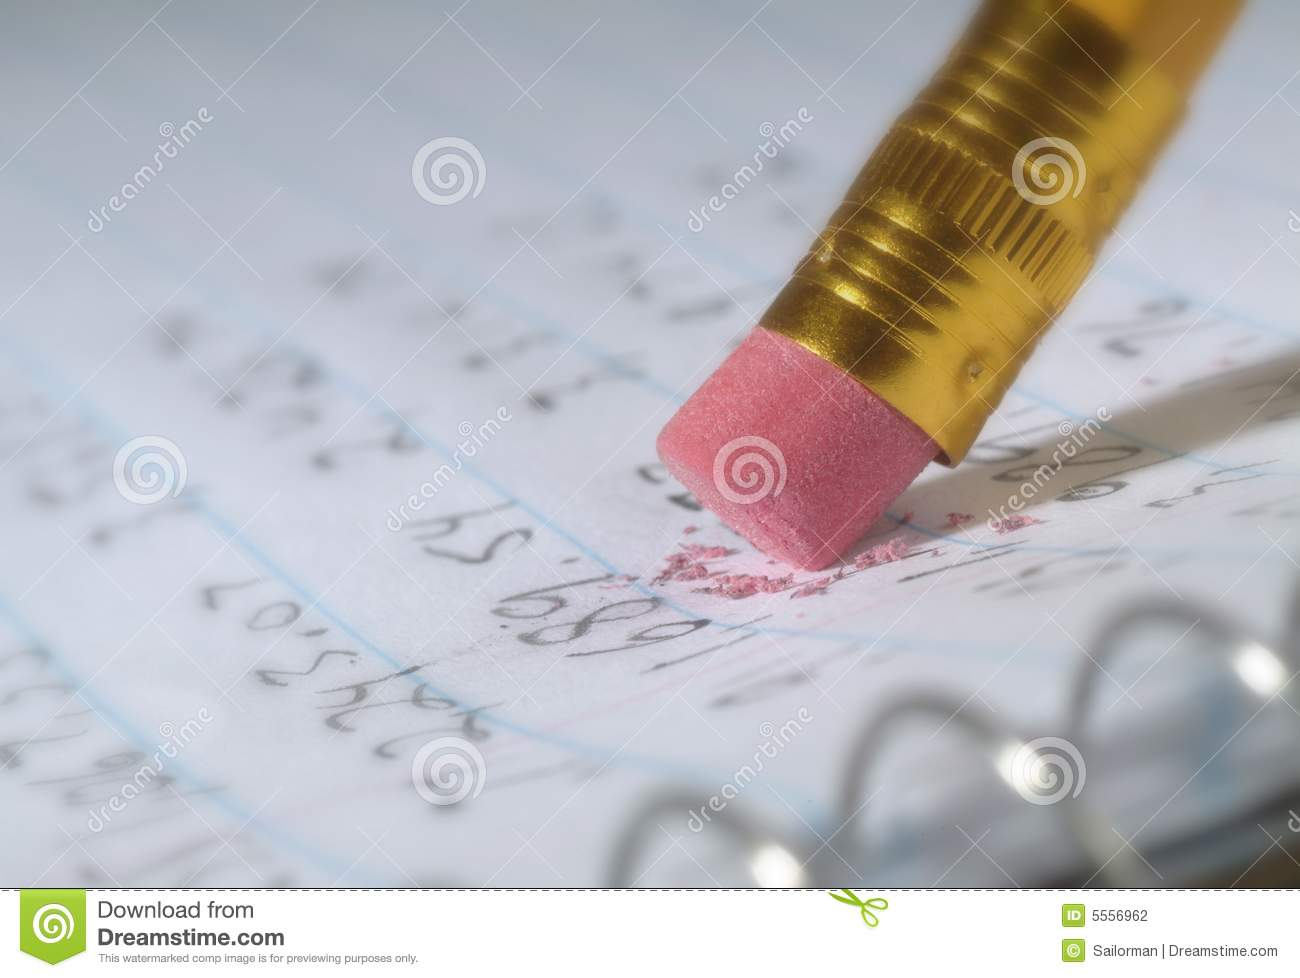 Erasing A Mistake On Piece Of Paper